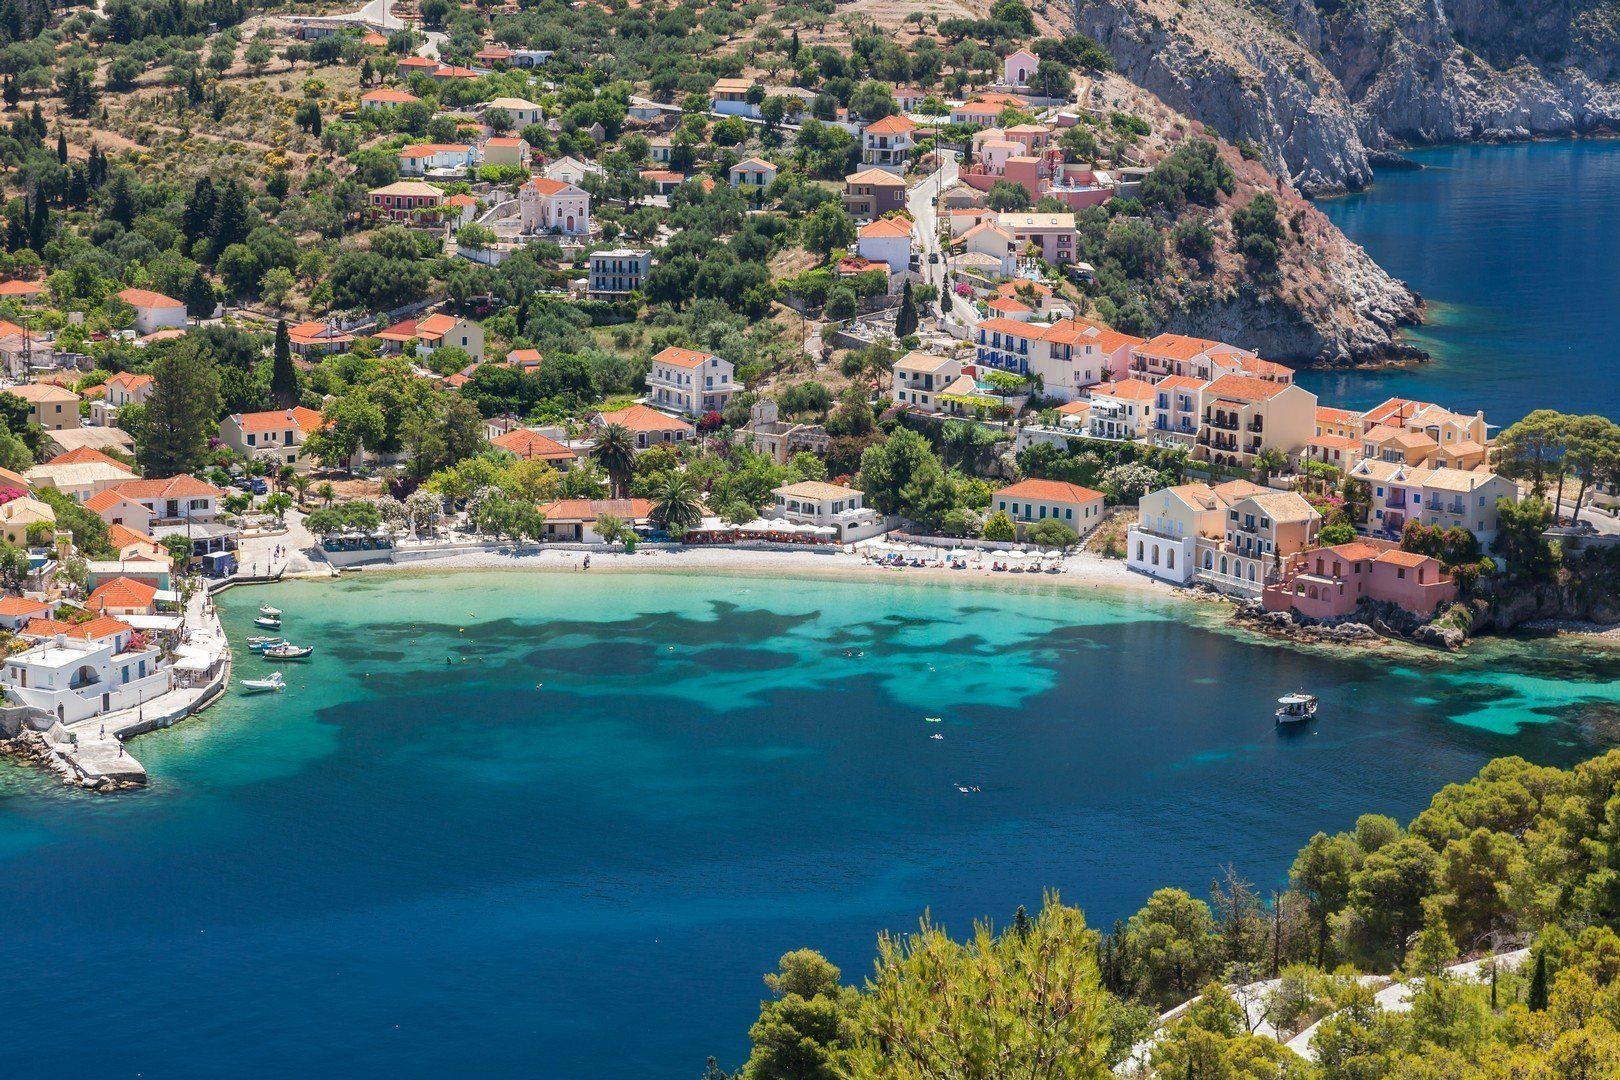 Assos on the island of Kefalonia